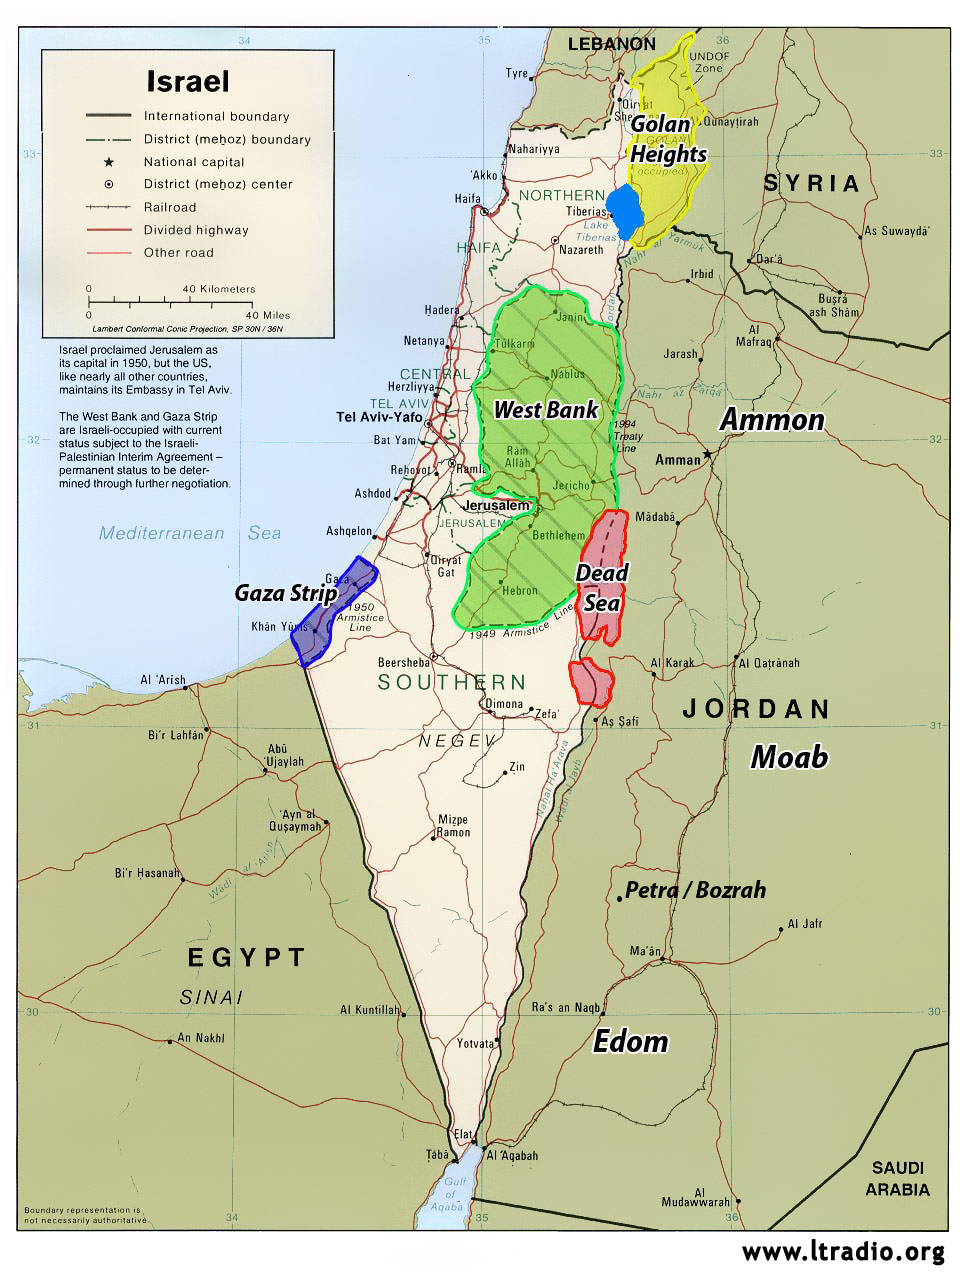 Map Of Israel Today Maps Israel Today Aipacorg Map Israel Today - Map of israel today